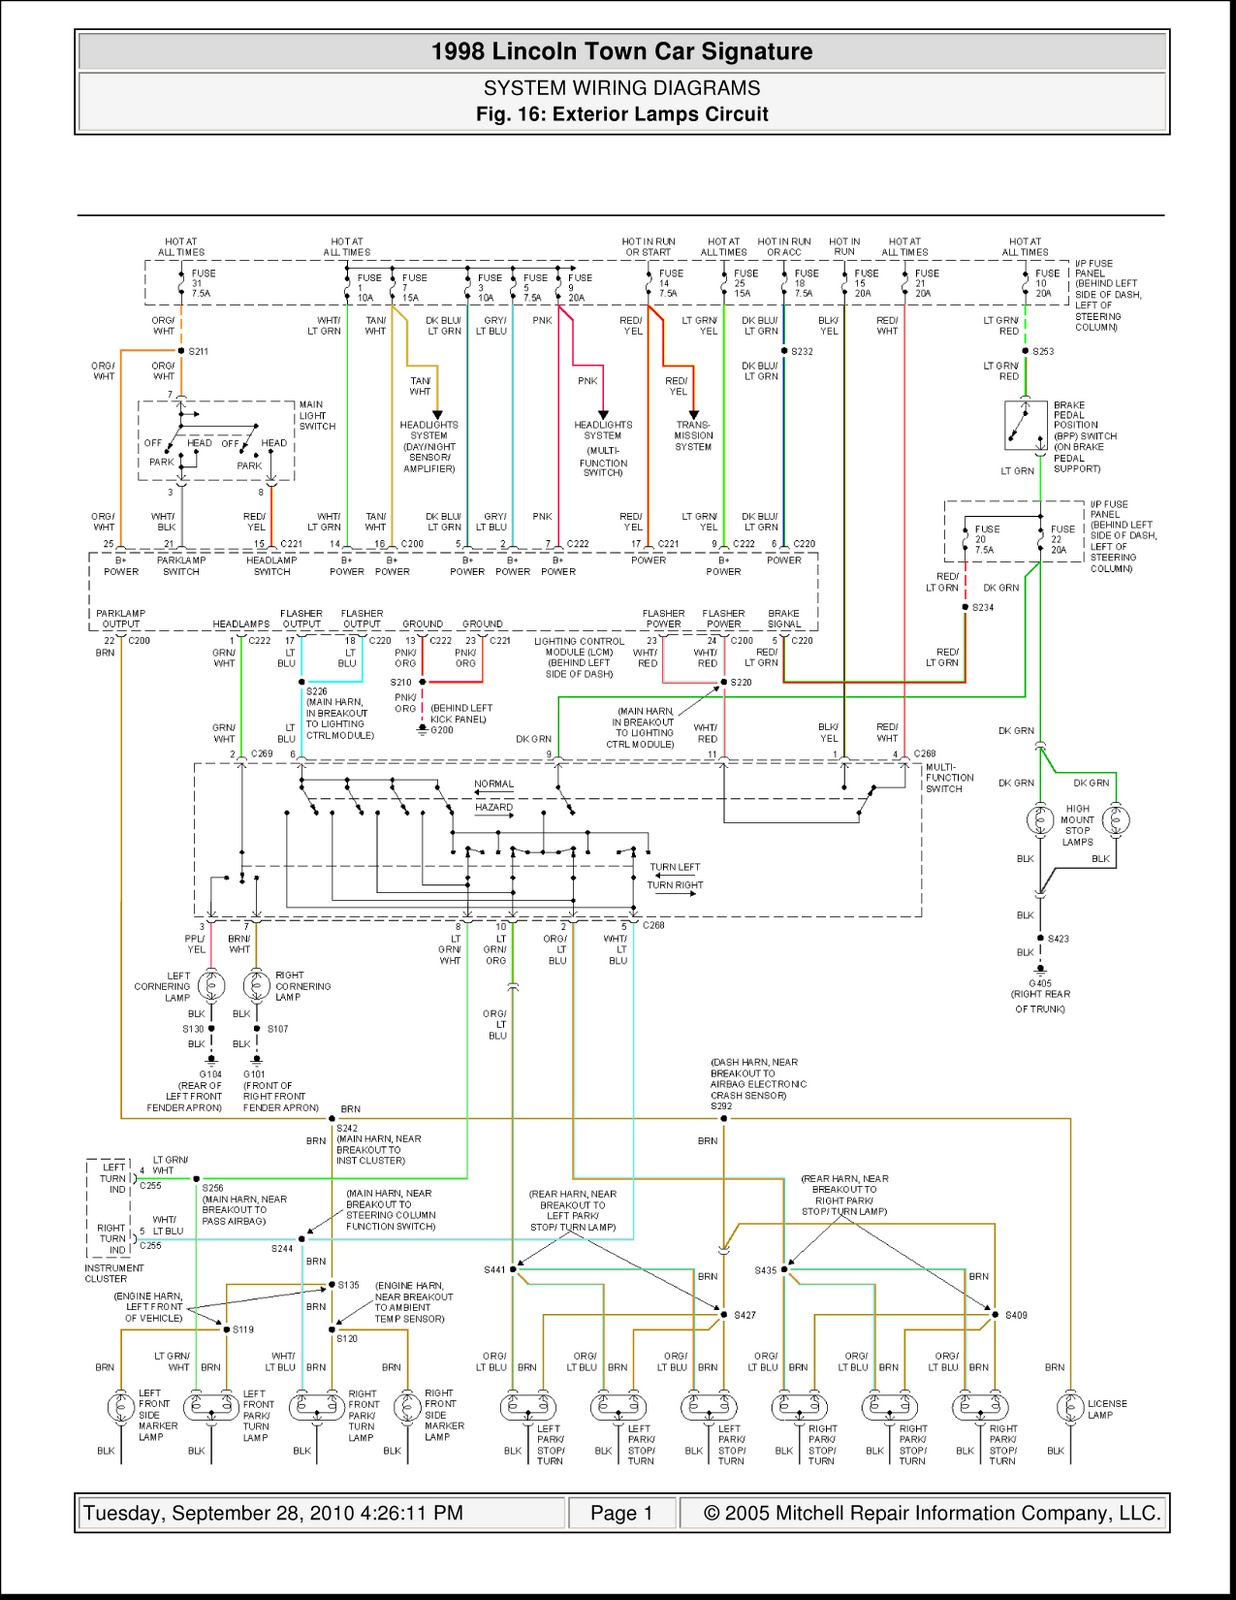 medium resolution of 1998 lincoln town car signature system wiring diagrams